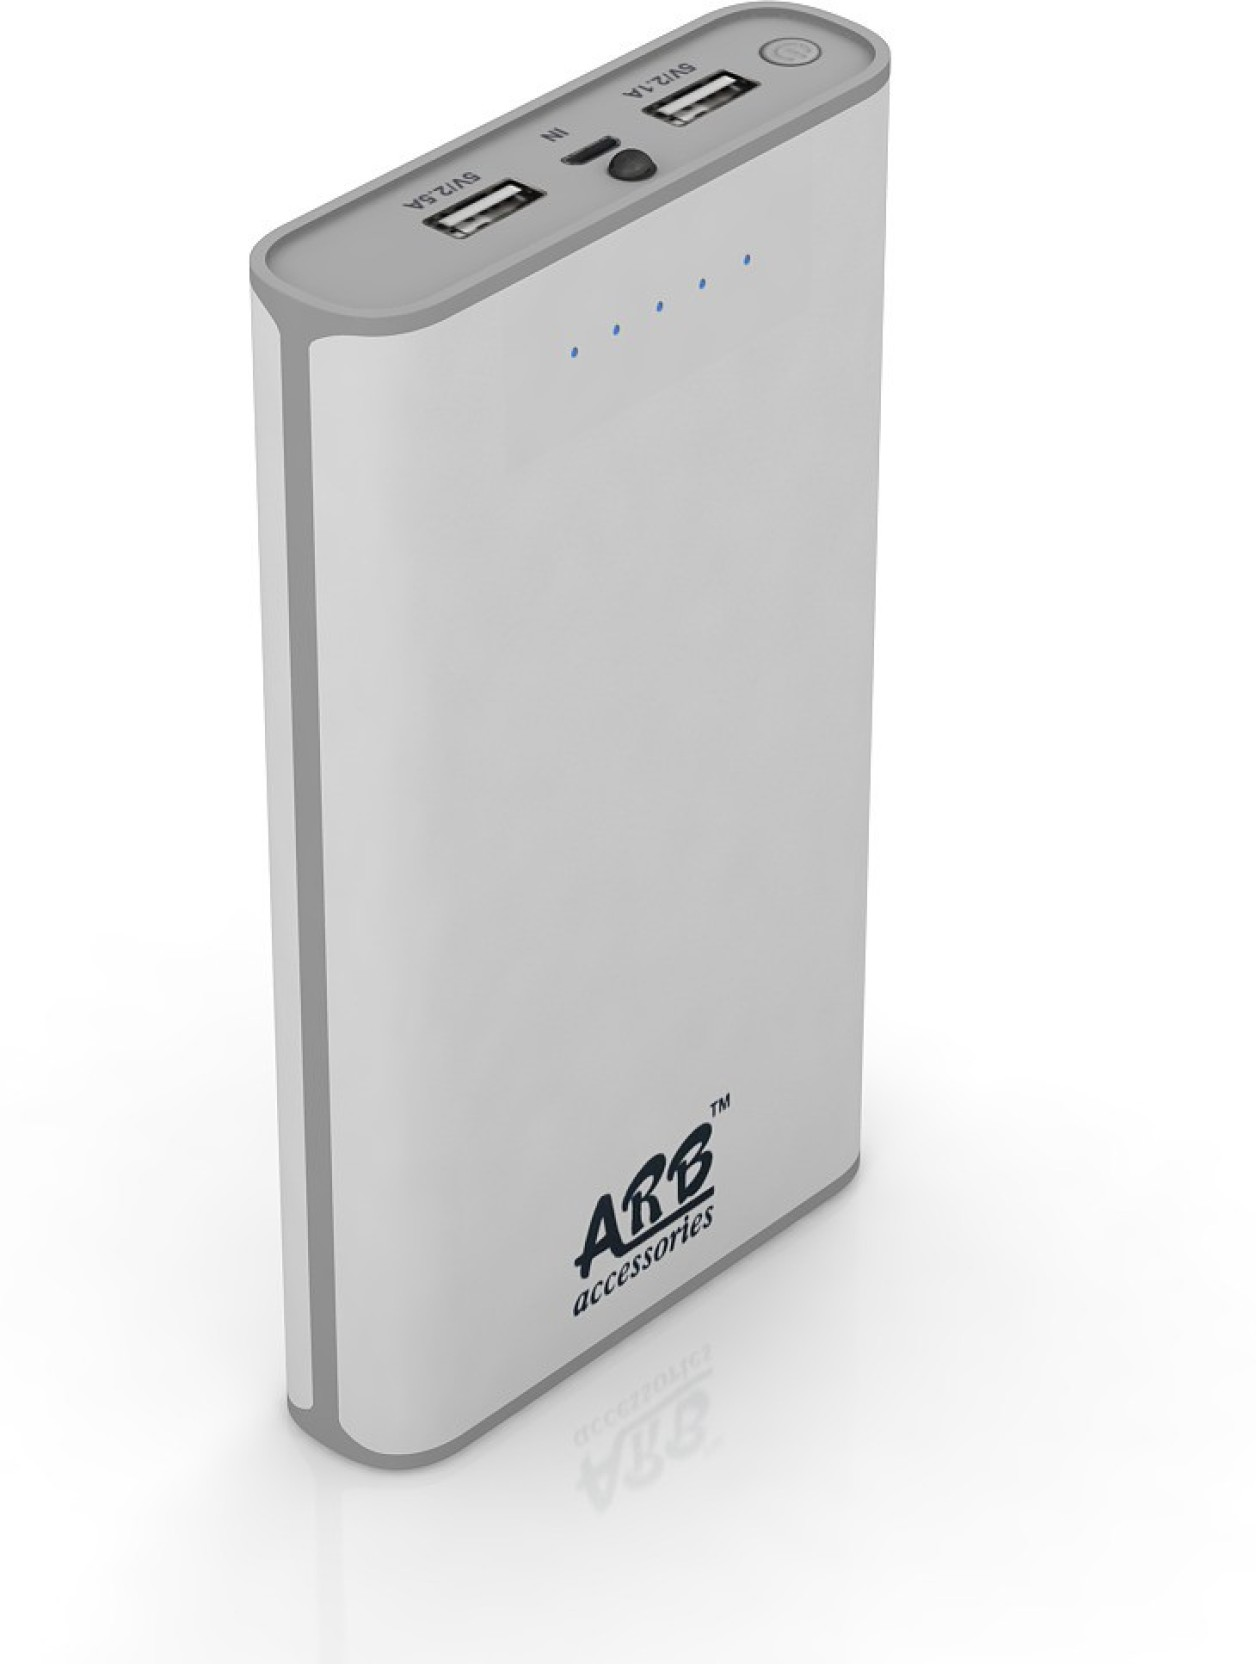 Arb 20800 Mah Power Bank Aa8 With Samsung Lg Cells Fast Nokia 603 2gb Black Add To Cart